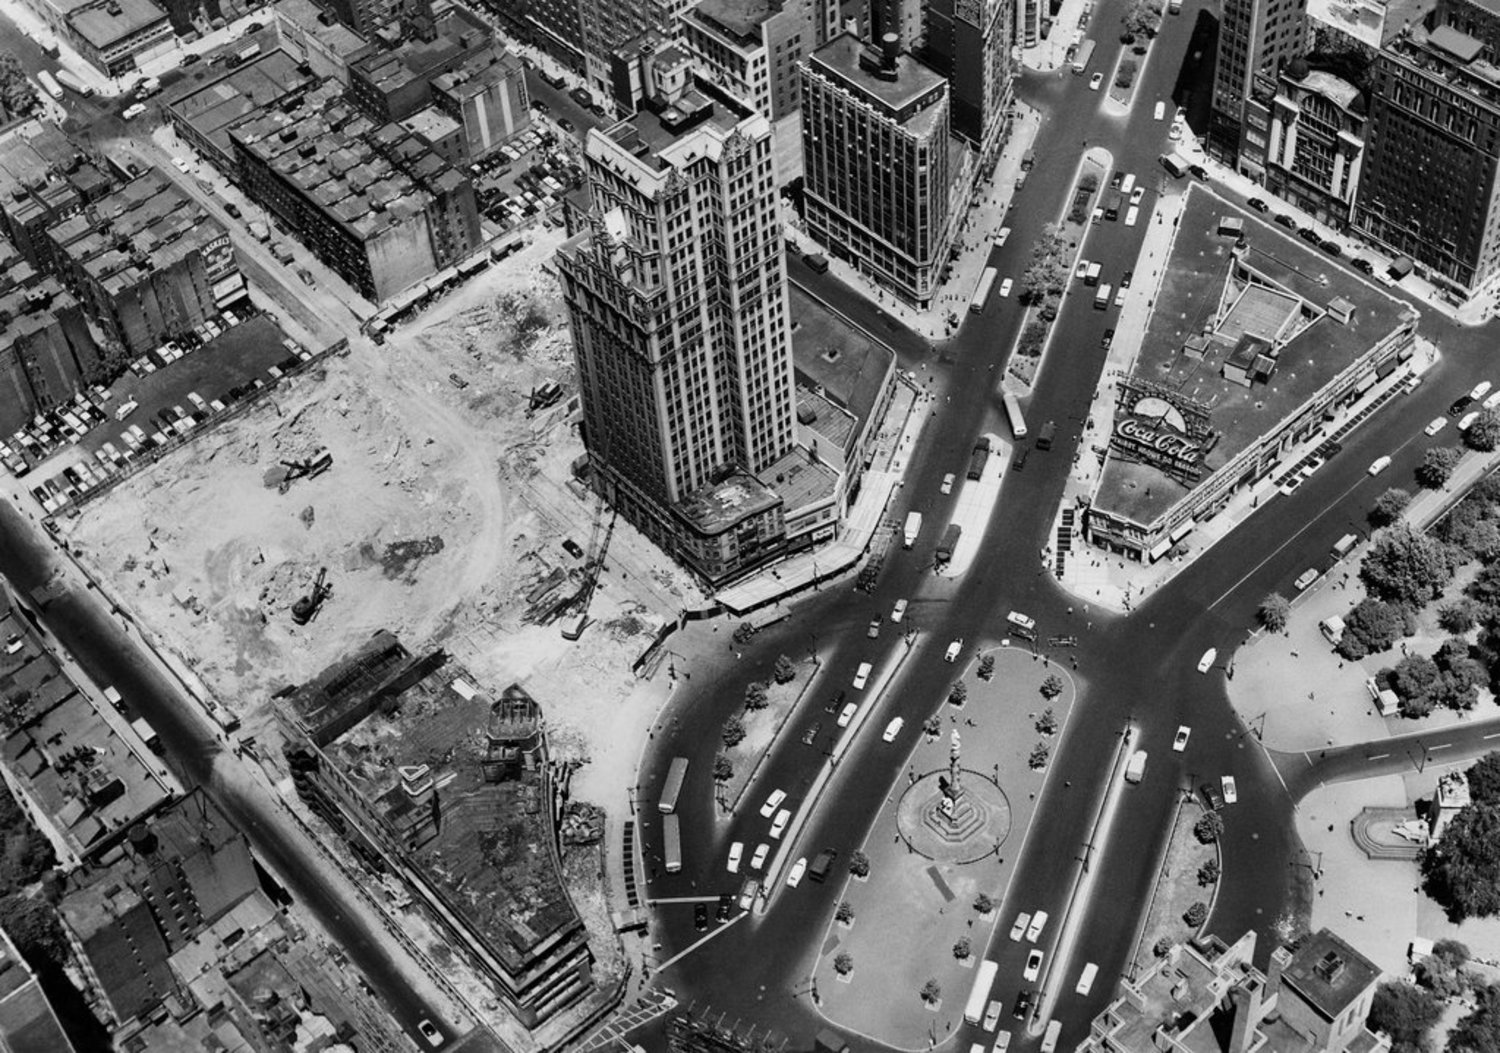 "June 21, 1954: Plans to build on Columbus Circle required demolition of 1819 Broadway, a tower of offices that would be ""the tallest building ever to come down anywhere in the world,"" according to H. B. Mack, president of Wreckers and Excavators Inc. The demolition, which displaced pigeons and others, was to make space for the New York Coliseum, a convention center that stood there from 1956 till 2000, when the Time Warner Center moved in."